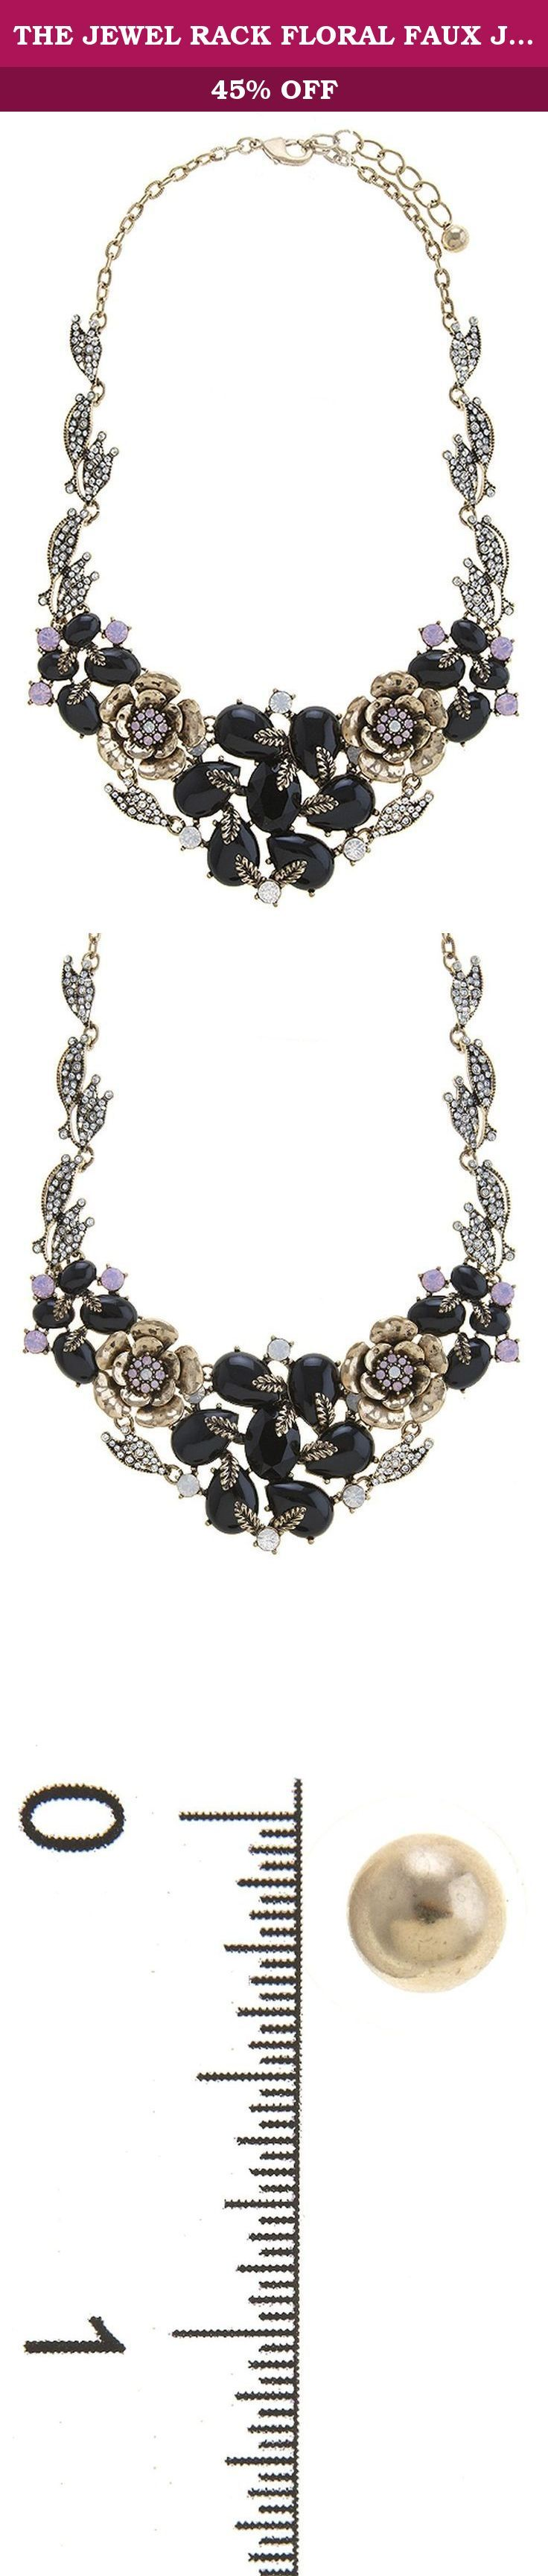 THE JEWEL RACK FLORAL FAUX JEWELED BIB NECKLACE SET. FASHION DESTINATION PRESENTS THE JEWEL RACK FLORAL FAUX JEWELED BIB NECKLACE SET. Buy brand-name Fashion Jewelry for everyday discount prices with Fashion Destination! Everyday LOW shipping *. Read product reviews on Fashion Necklaces, Fashion Bracelets, Fashion Earrings & more. Shop the Fashion Destination store for a wide selection of rings, bracelets, necklaces, earrings and diamond jewelry. Whether you are searching for men's…